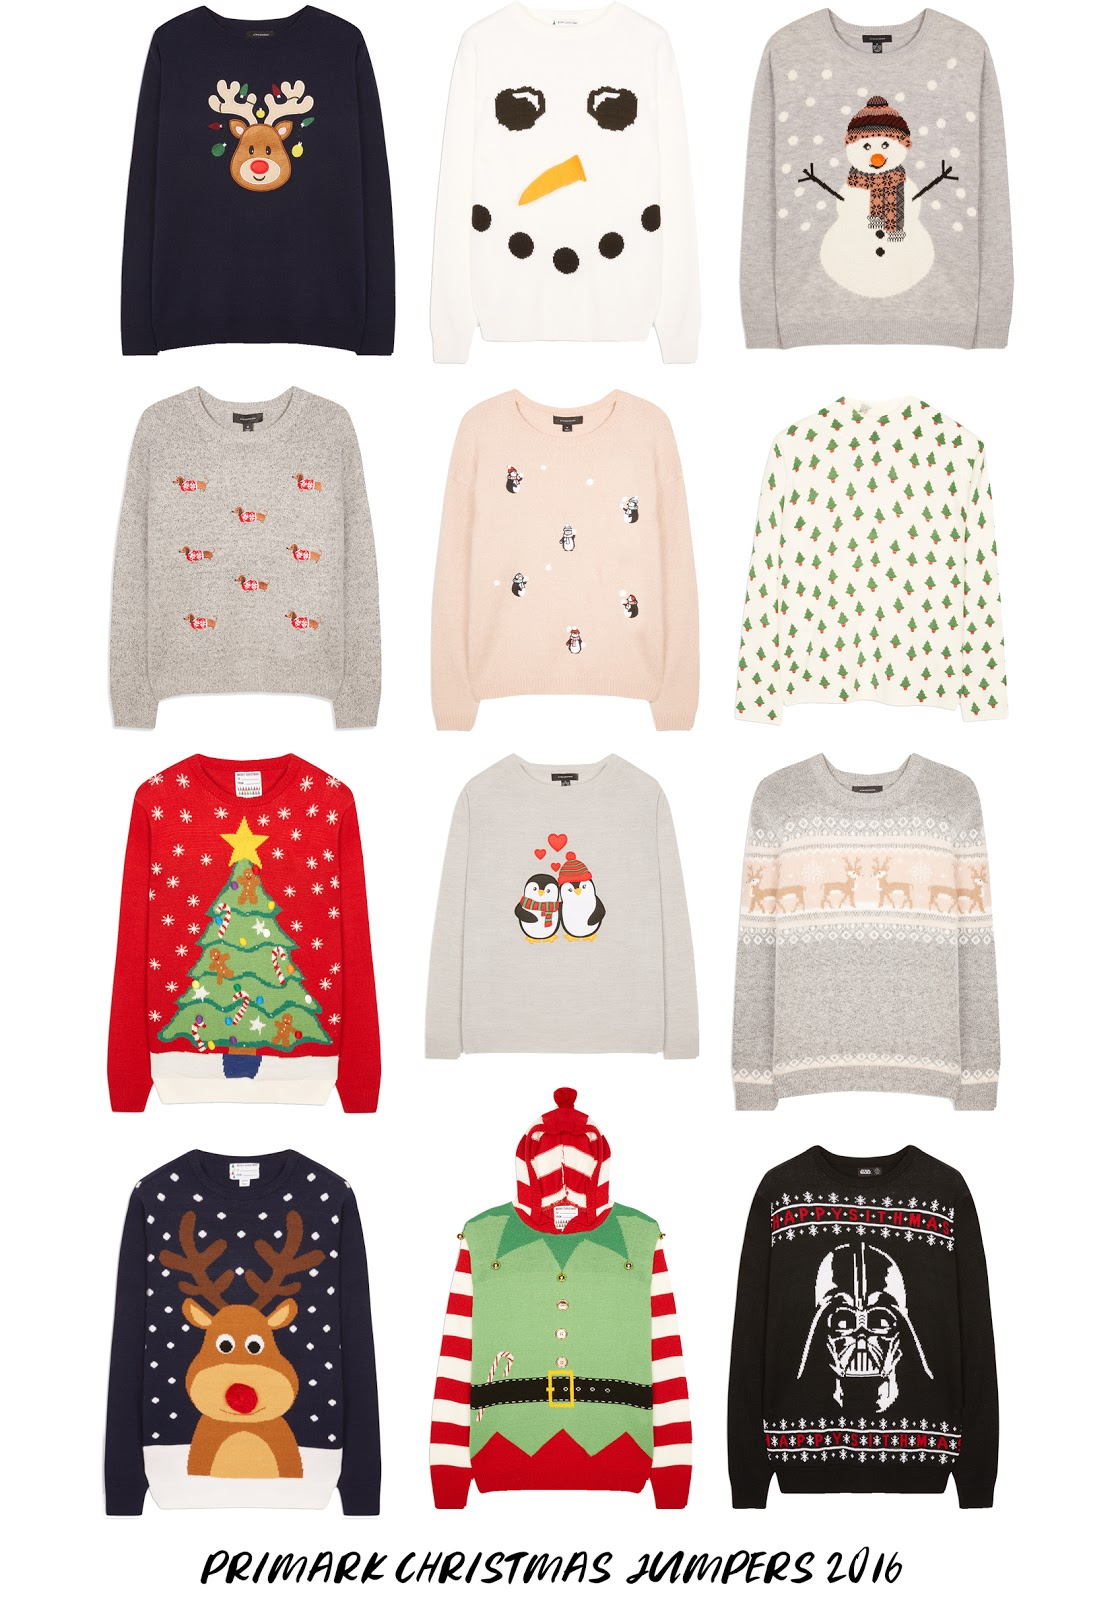 Primark Christmas Jumpers 2016